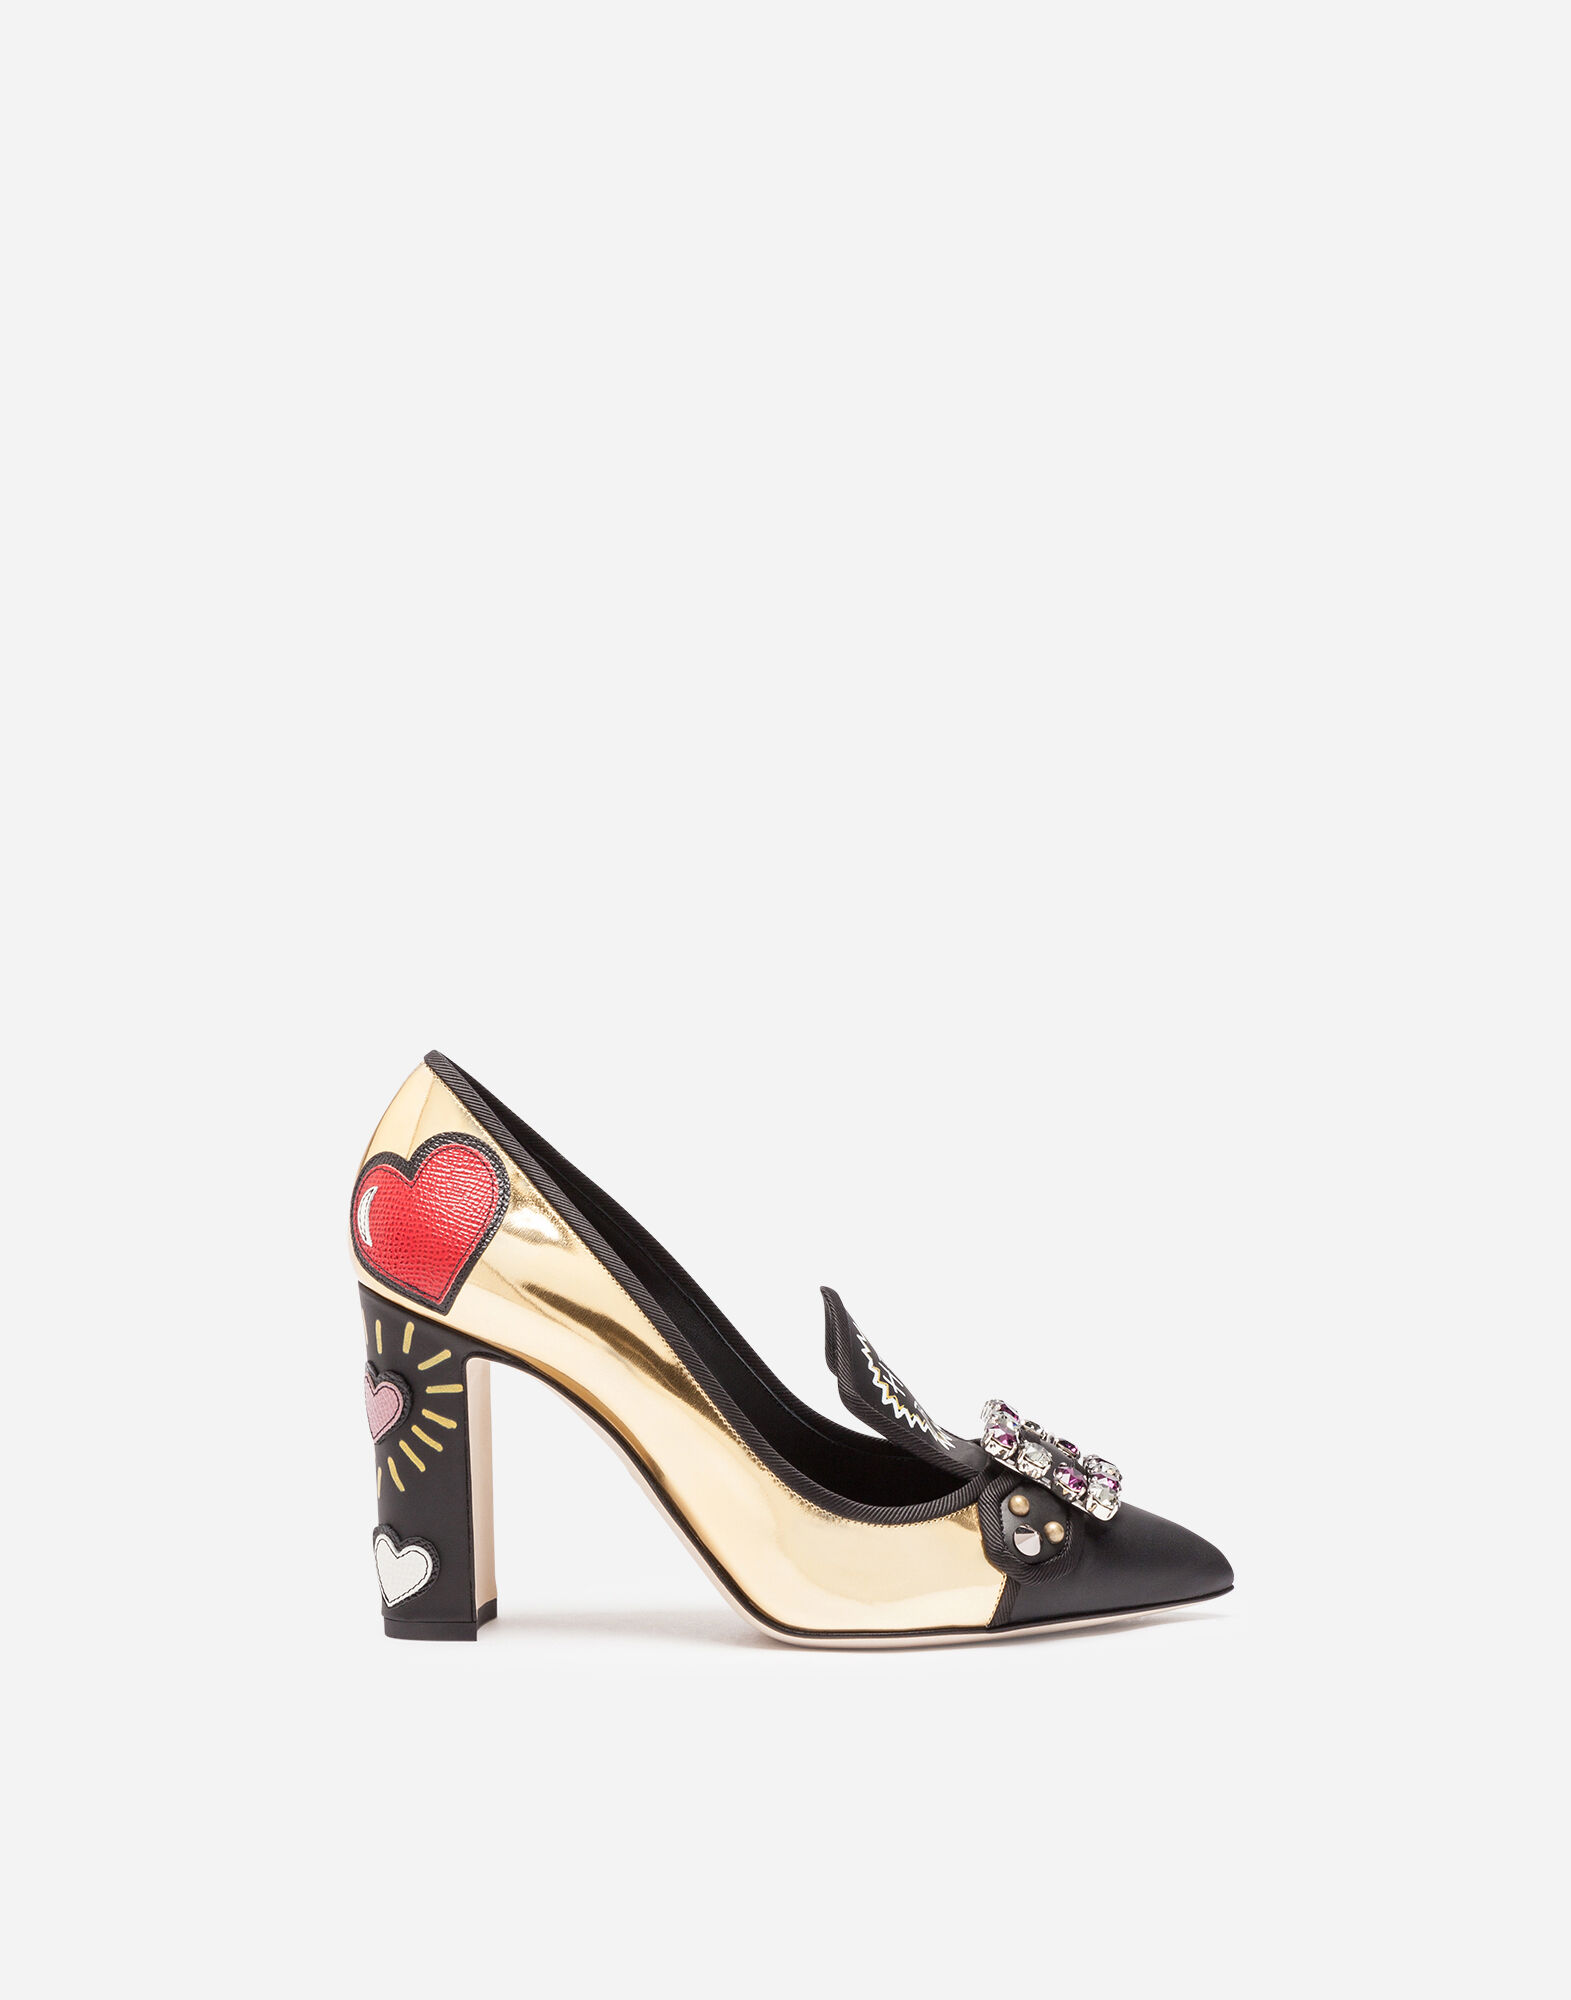 PRINTED LEATHER PUMPS WITH CRYSTALS